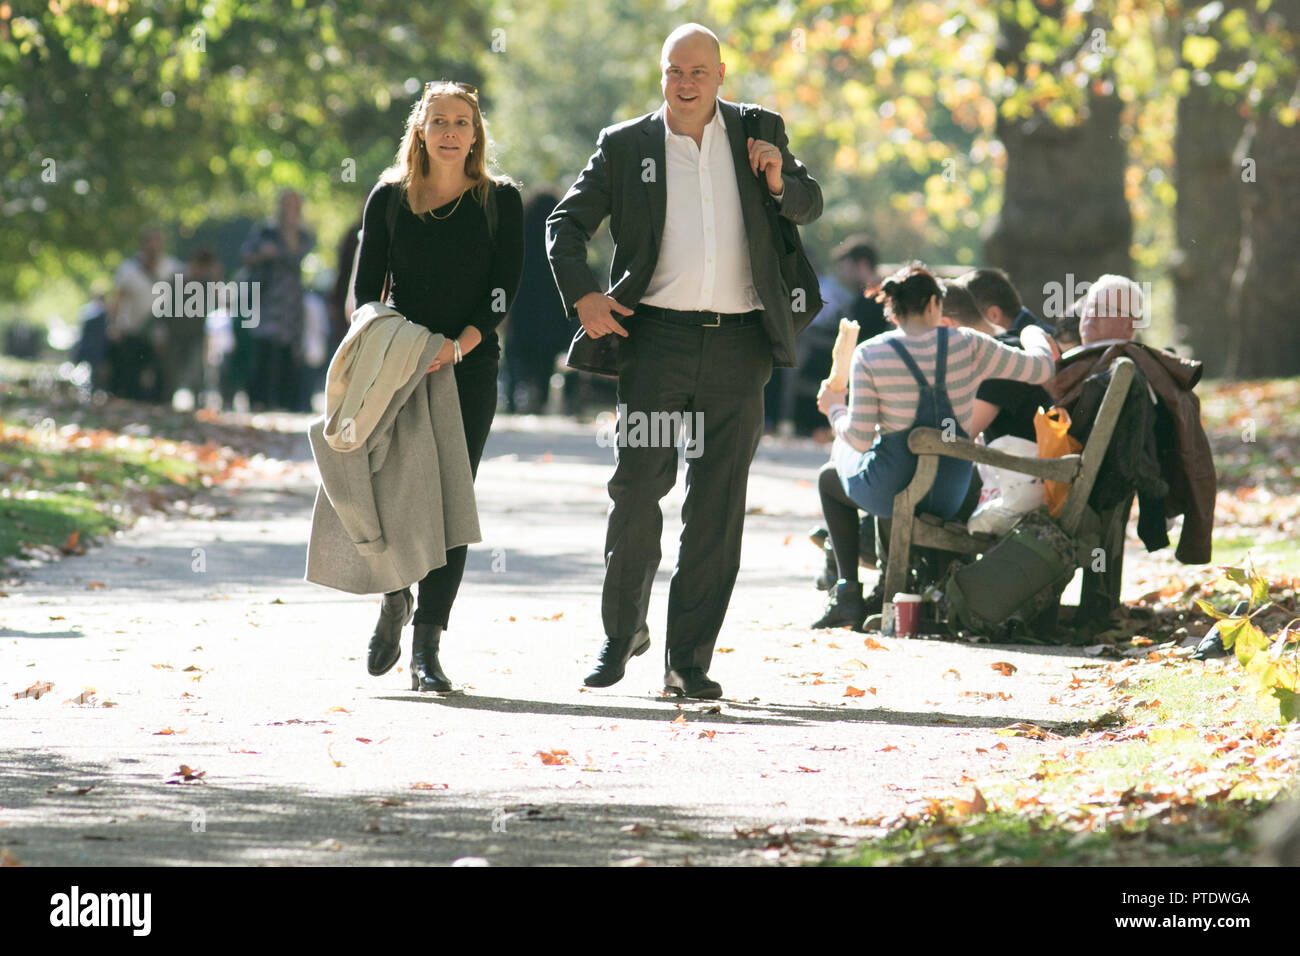 London UK. 9th Ocrober 2018. A couple  strolling in the afternoon  sunshine in Saint James's Park covered in fallen leaves on a warm autumn day as October is forecast to be the hottest month in Seven years as the Indian summer returns Credit: amer ghazzal/Alamy Live News - Stock Image